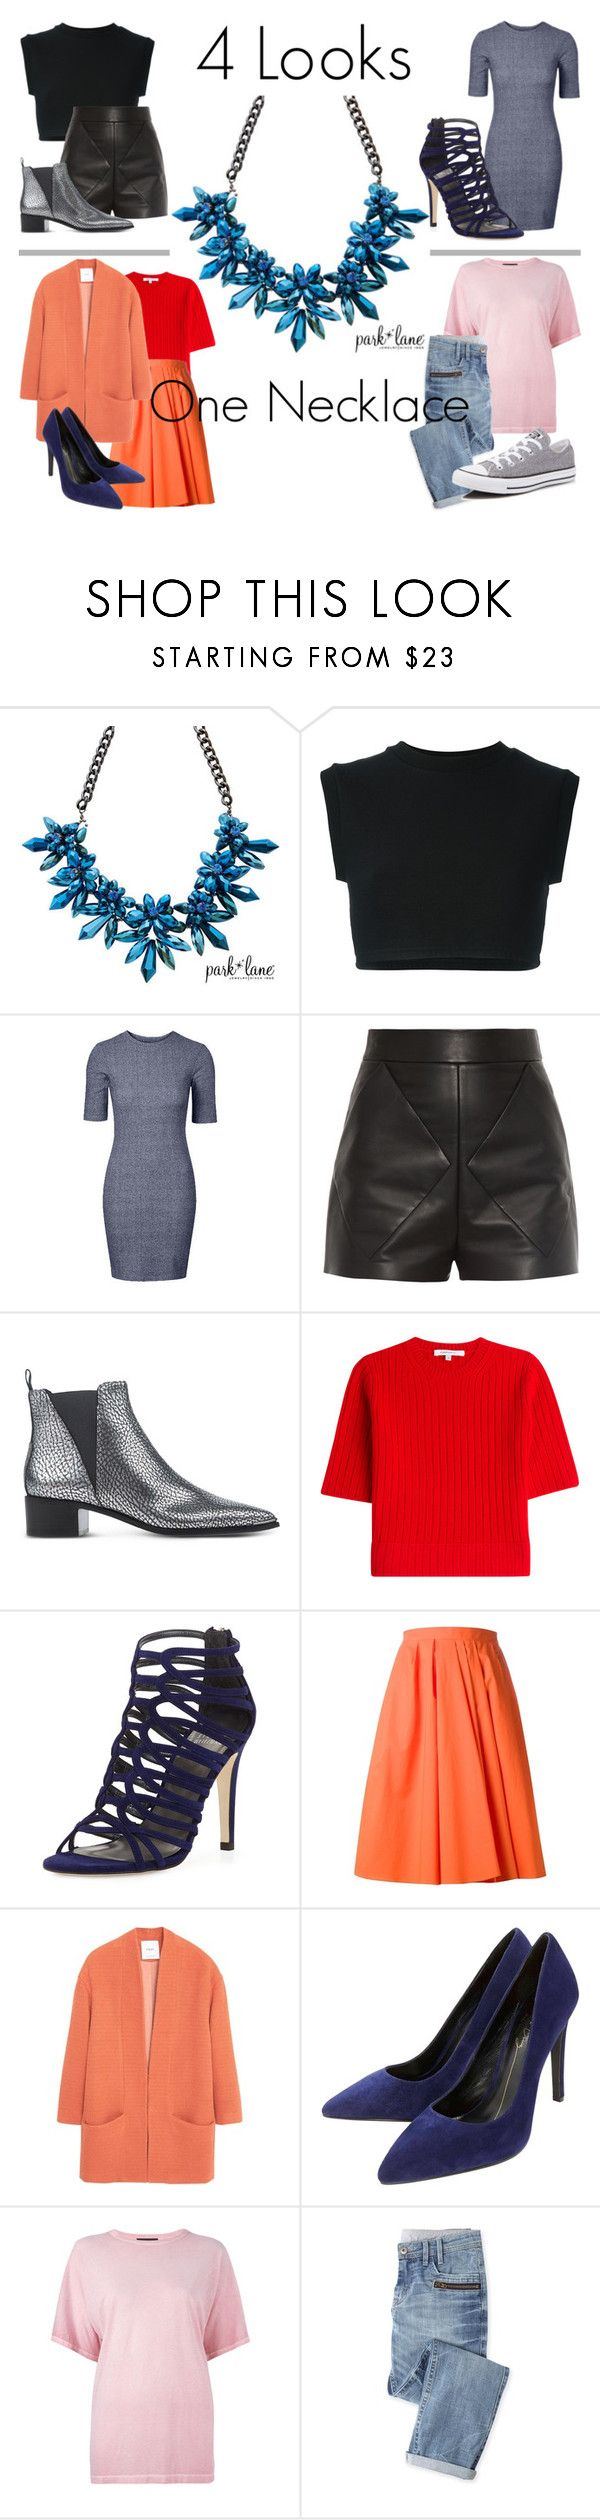 """What Is Your Style?"" by parklanejewelry on Polyvore featuring adidas Originals, Balenciaga, Acne Studios, Carven, Stuart Weitzman, MANGO, Lola Cruz, Diesel Black Gold, Wrap and Converse"